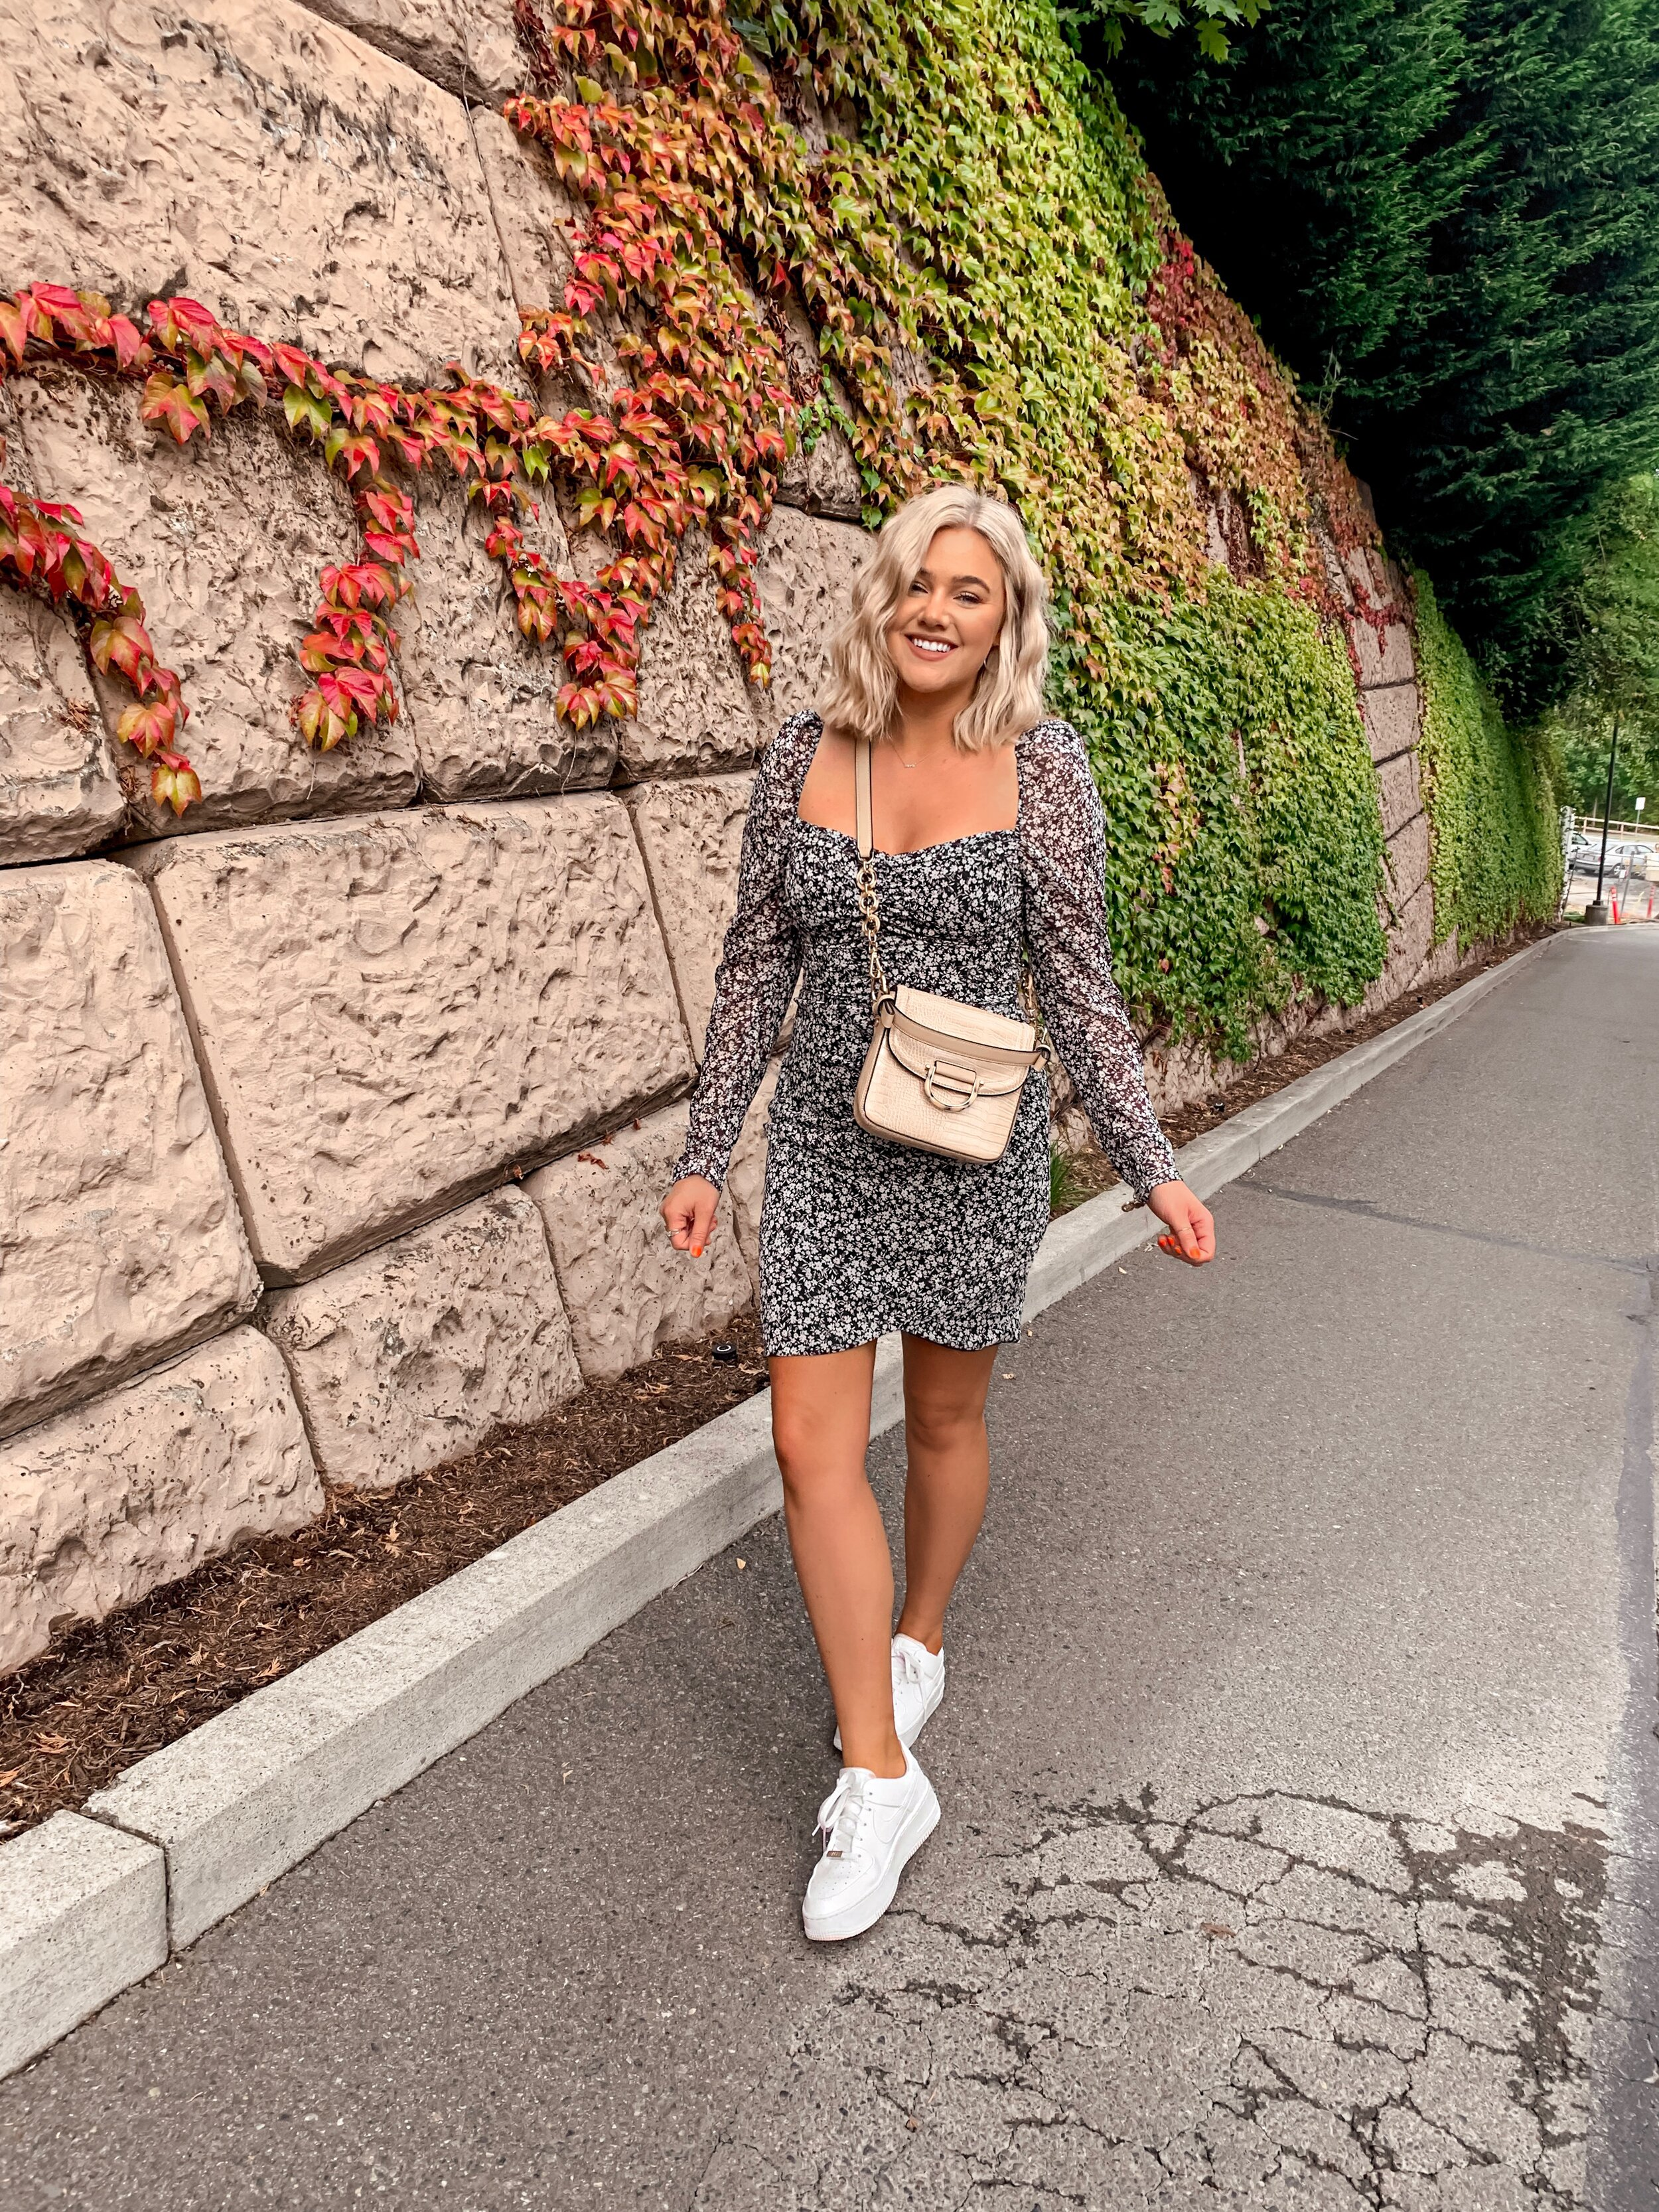 Floral Dress and Sneakers - bresheppard.com.JPG